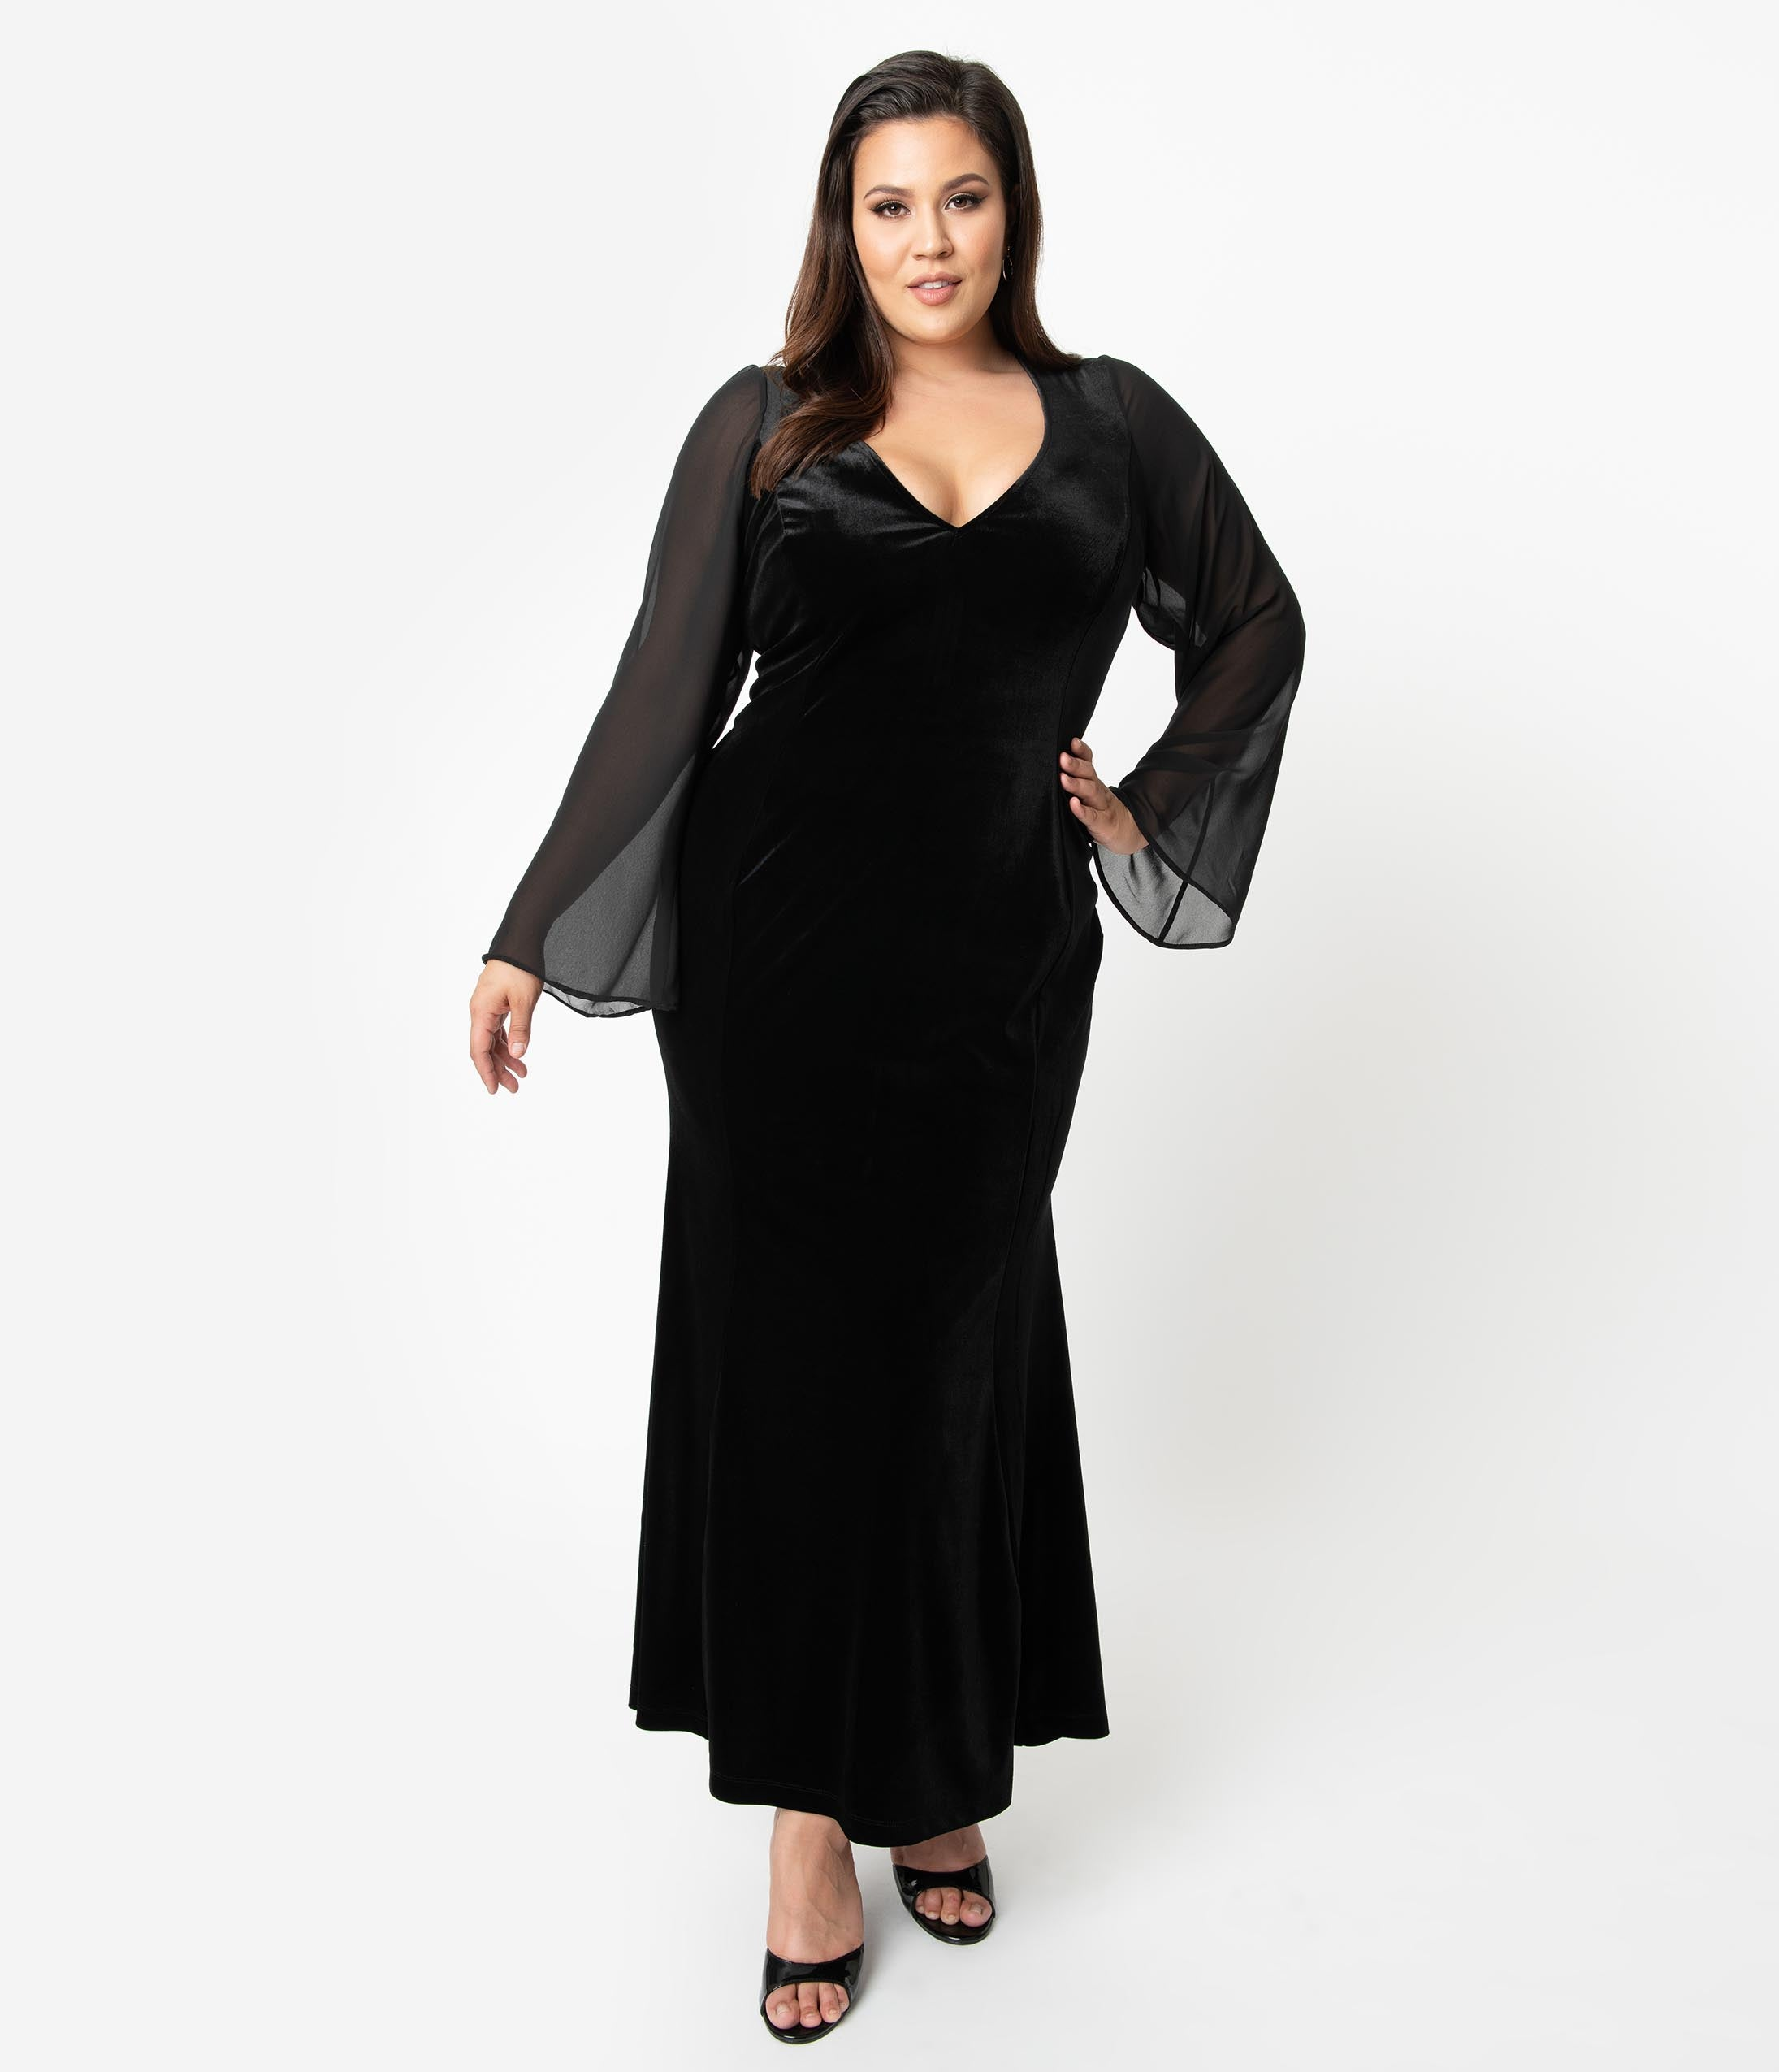 1950 Style Clothing- A Shopping Guide Unique Vintage Plus Size Black Velvet Sheer Long Sleeve Carrie Mermaid Gown $118.00 AT vintagedancer.com